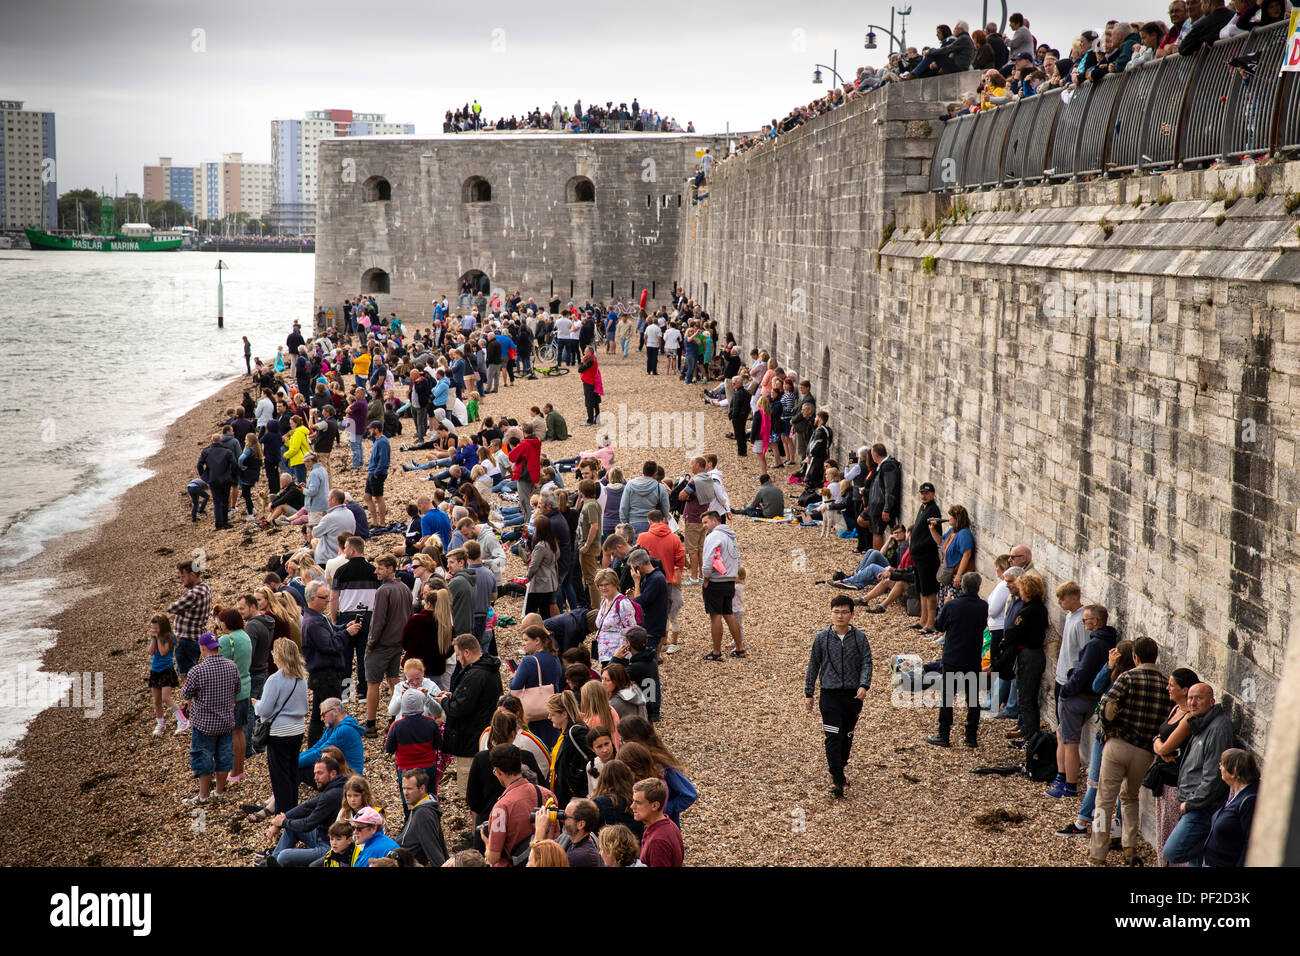 18 August 2018 crowds awaiting the departure of Royal Navy Flagship HMS Queen Elizabeth from Portsmouth - Stock Image